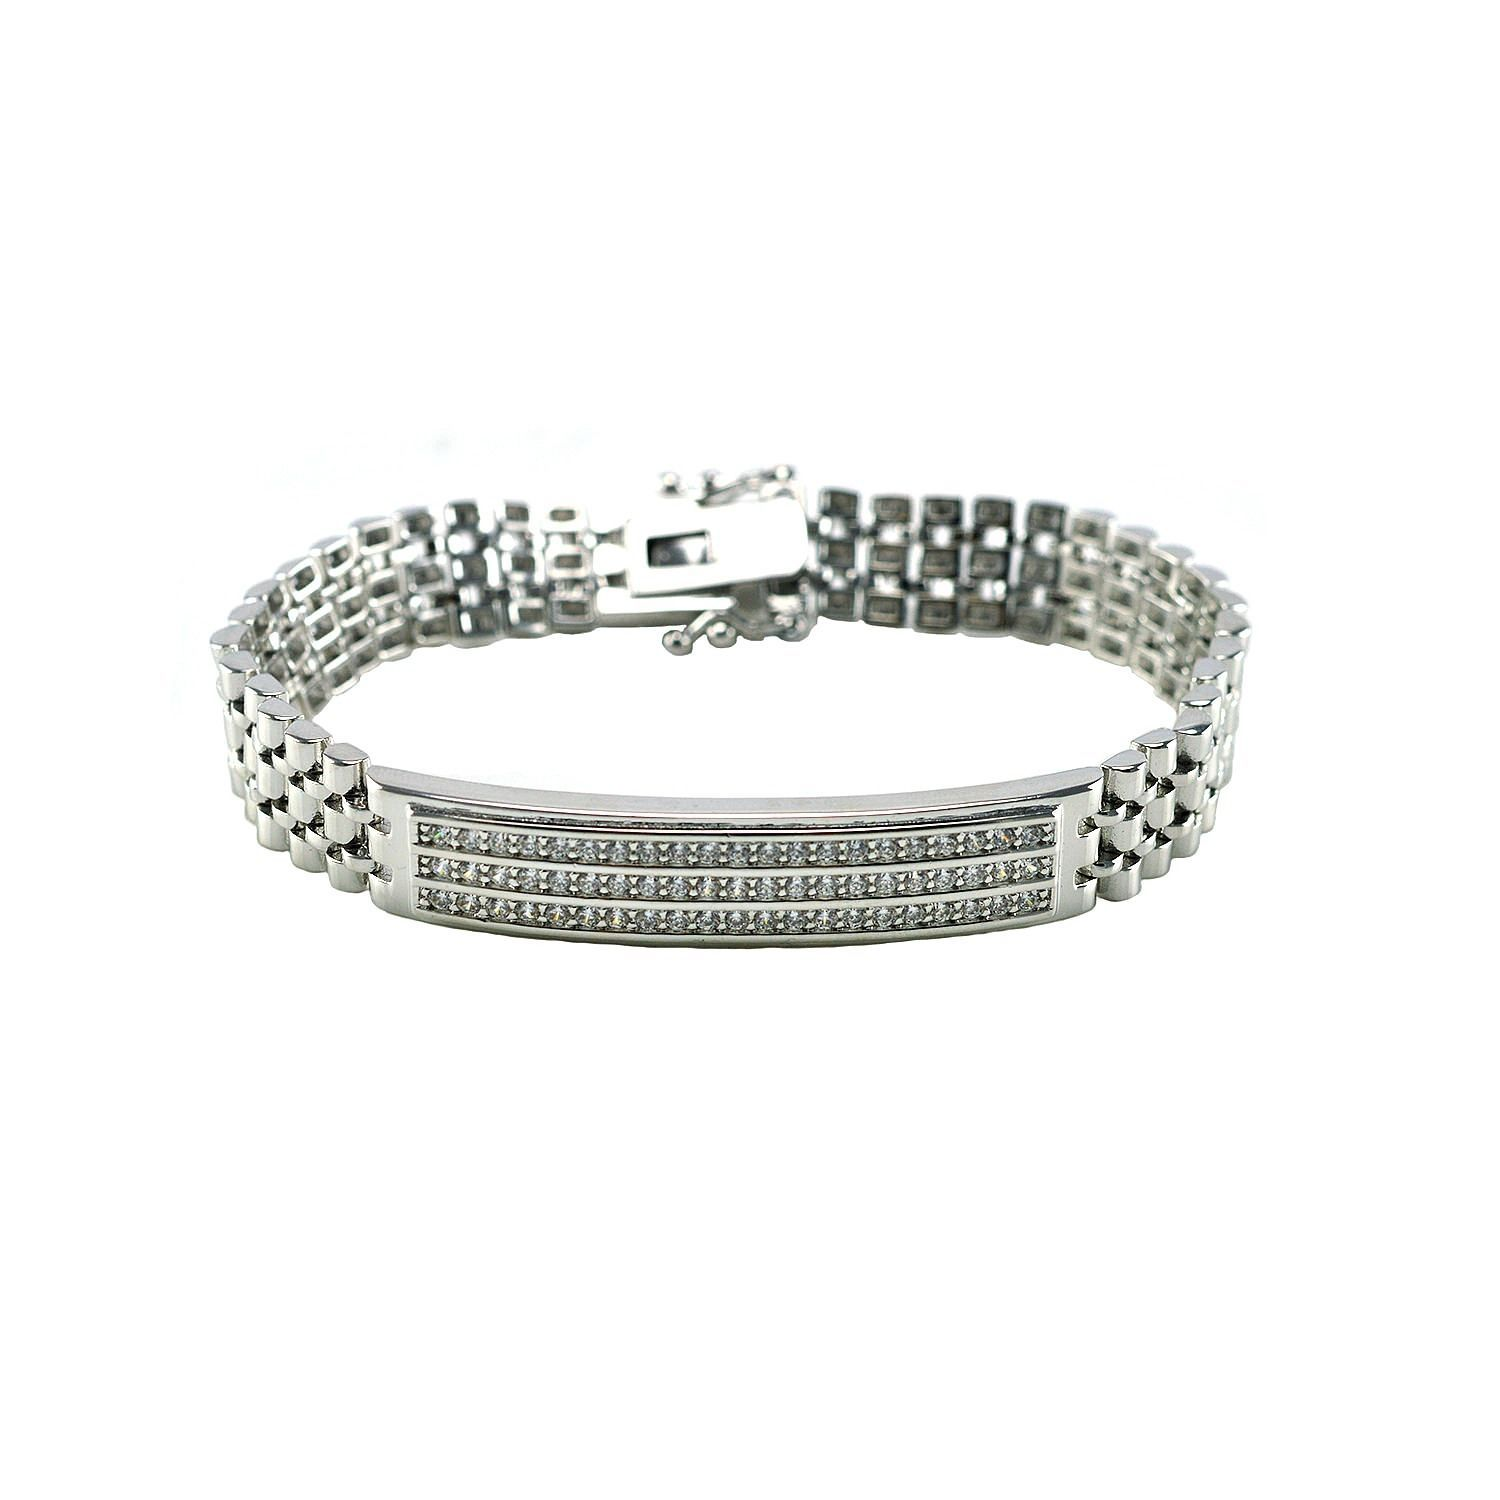 Pave Triple Row Clear AAA Cubic Zirconia Panther Link Bracelet-Glitzy